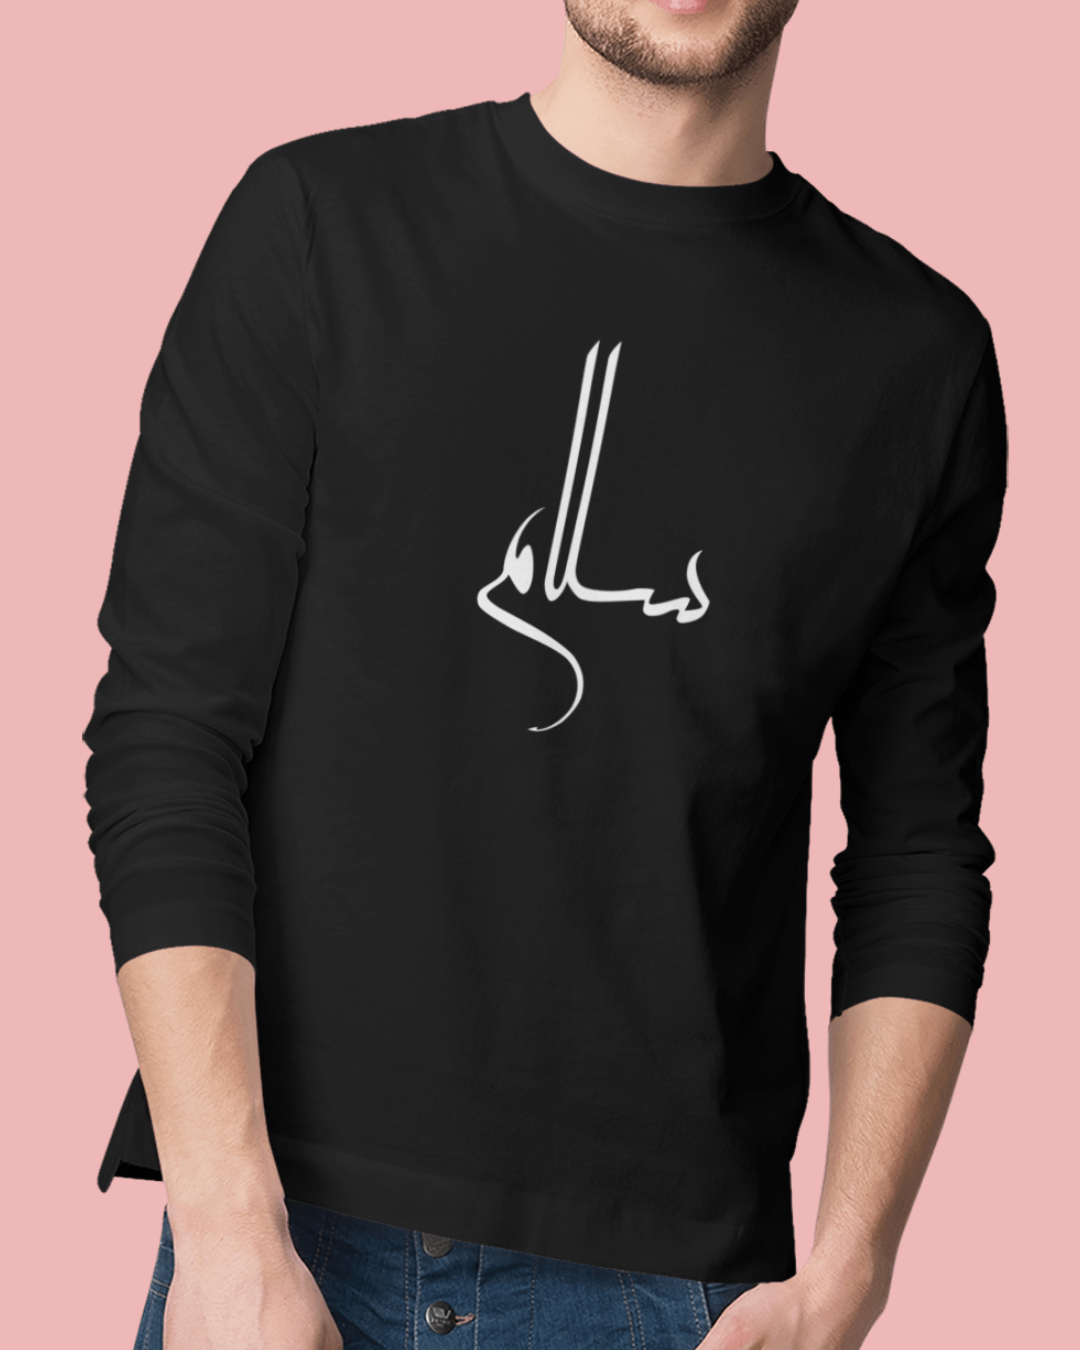 long-sleeve-tee-mockup-featuring-a-man-posing-against-a-colored-backdrop-4789-el1